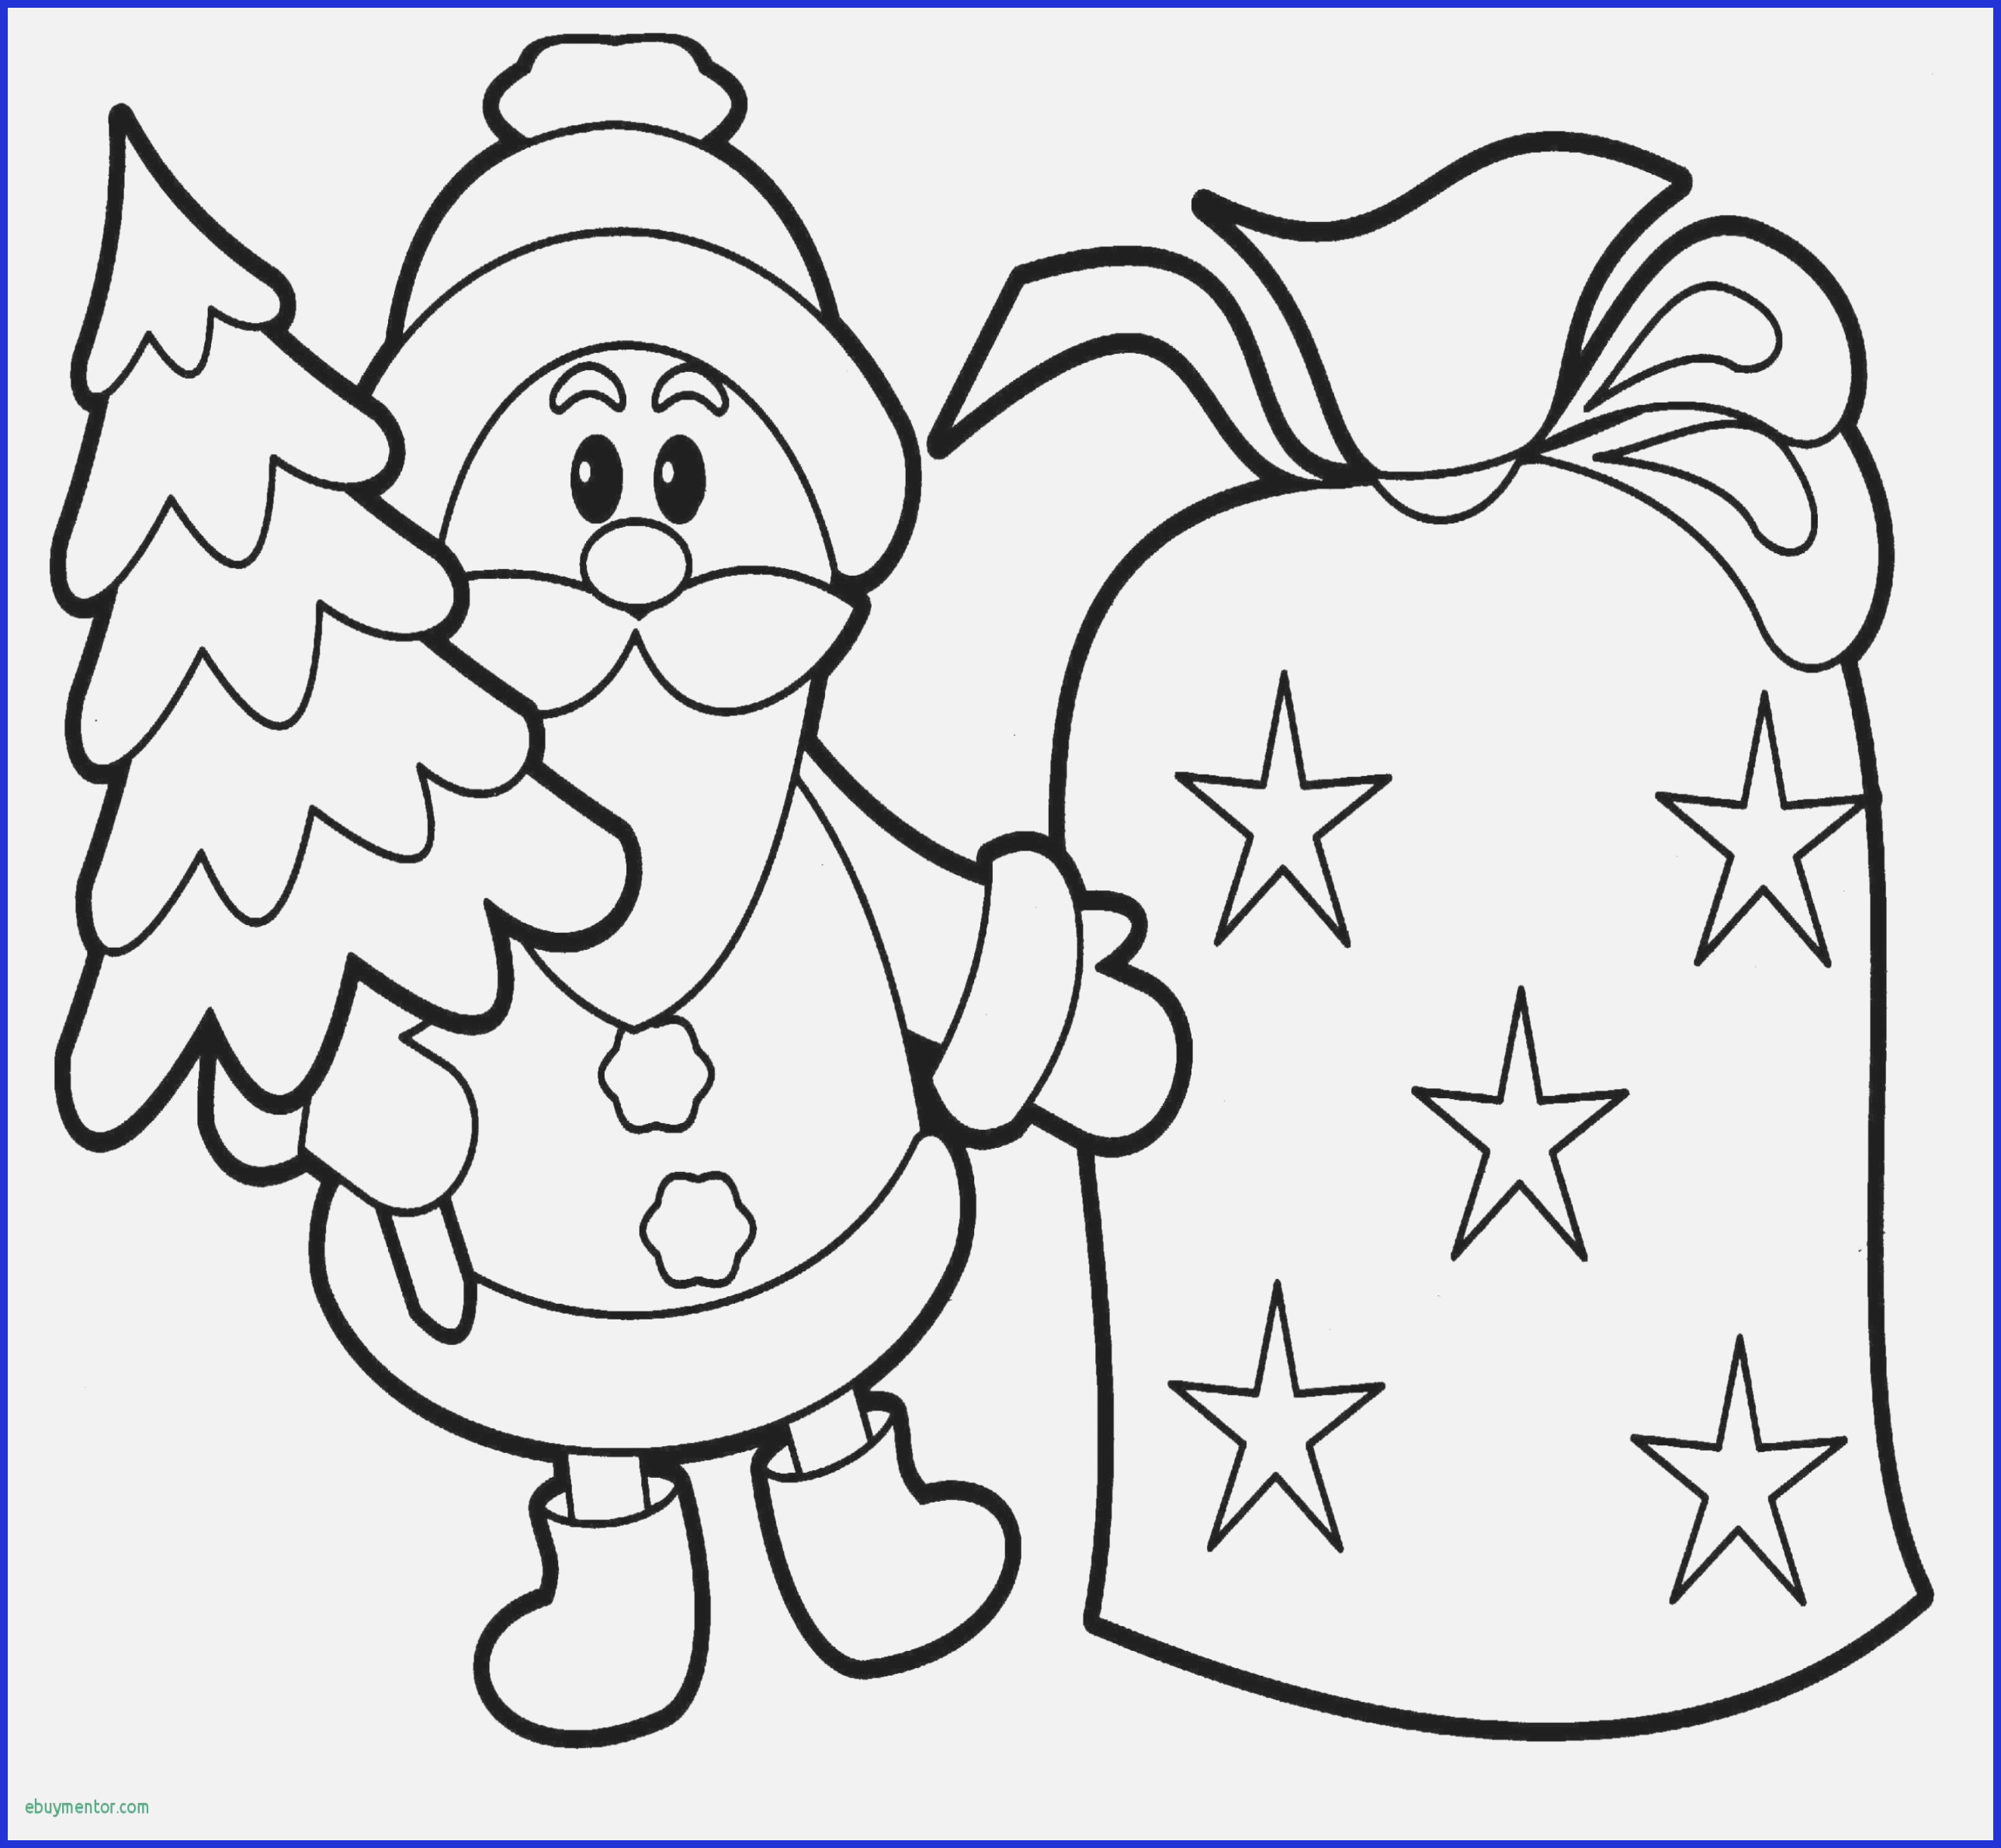 Christmas Coloring Pages For Second Graders With Halloween 2nd Free